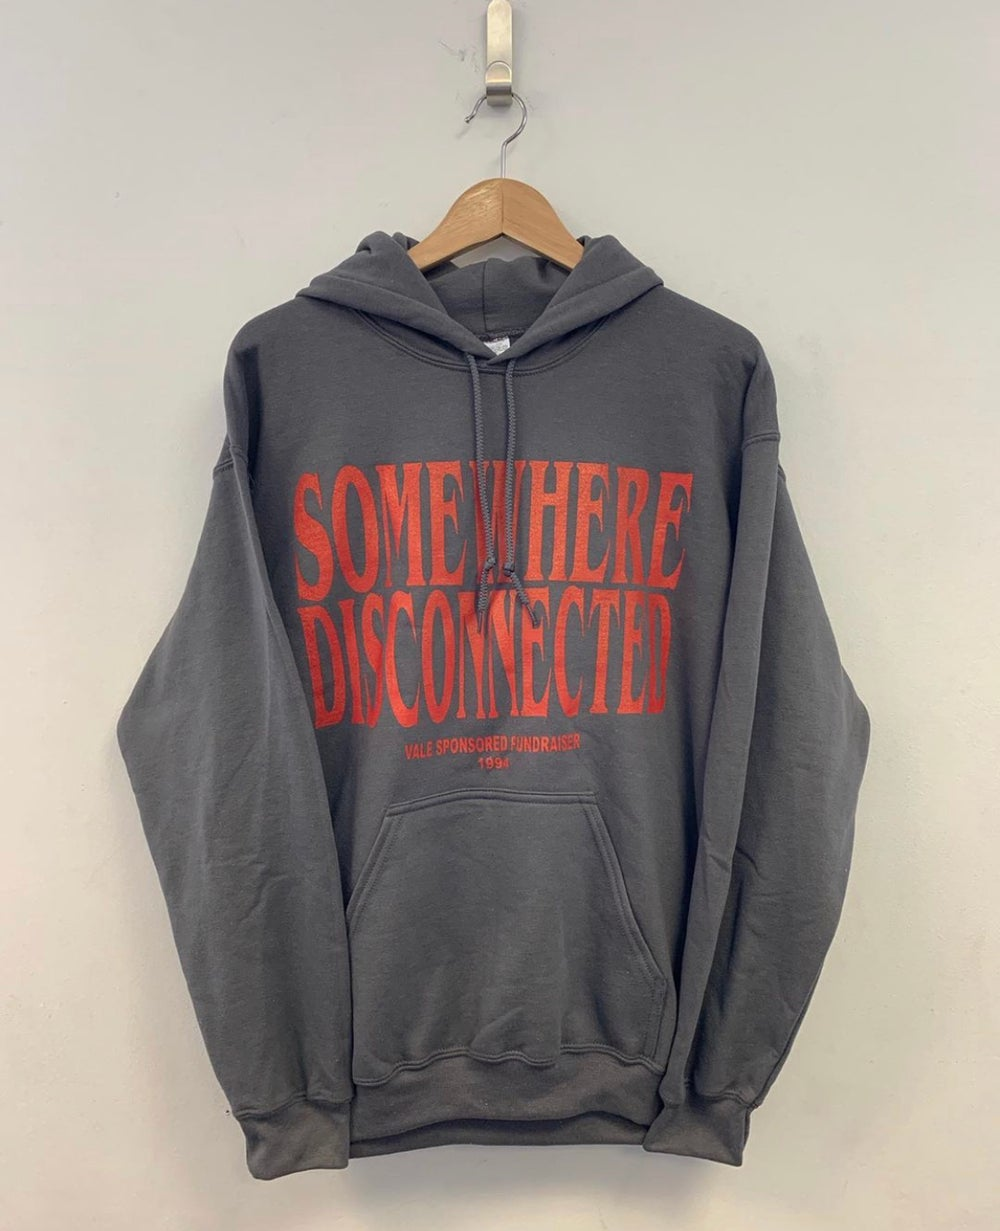 Image of Vintage Somewhere Disconnected Hoodie